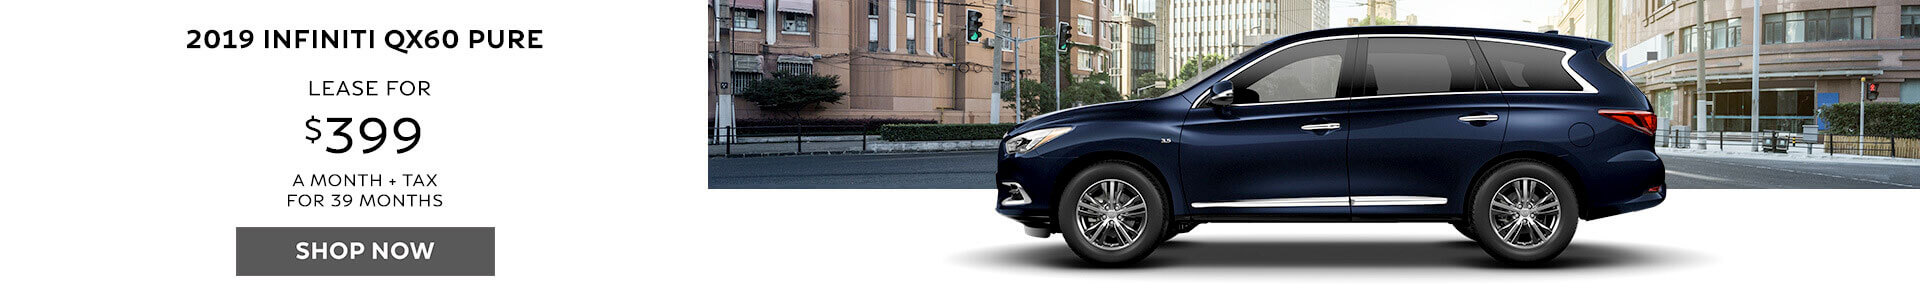 QX60 - Lease for $399